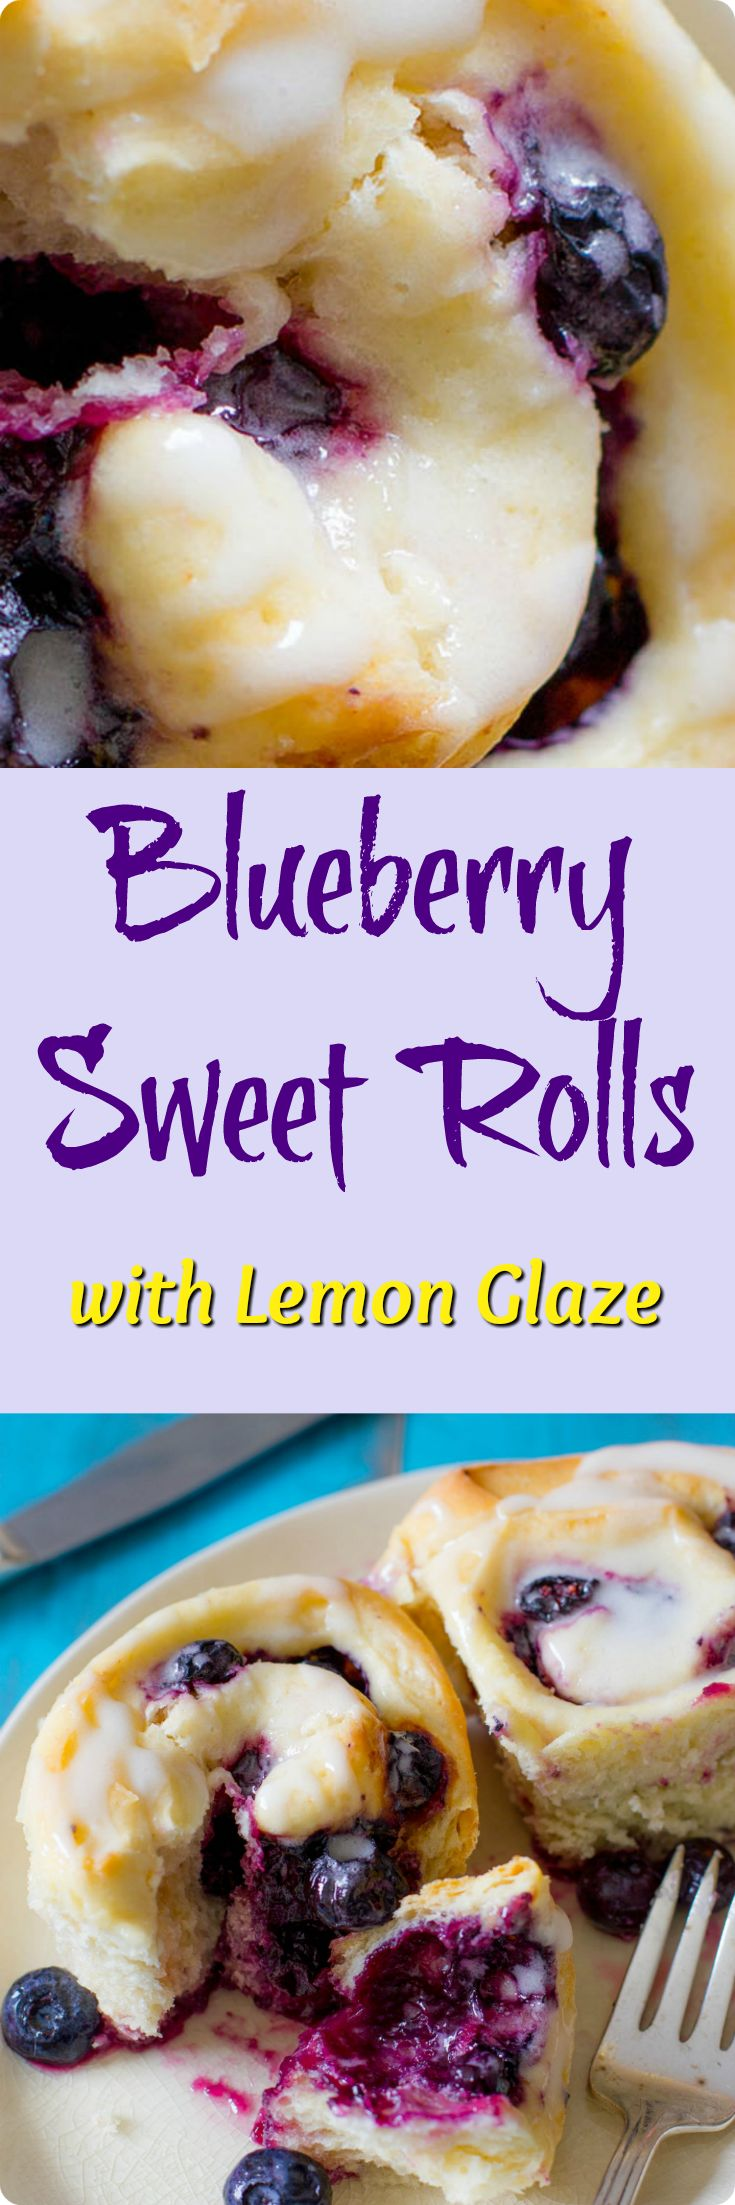 Soft & fluffy homemade sweet rolls filled with juicy blueberries and covered in a sweet lemon glaze. Find recipe at redstaryeast.com.